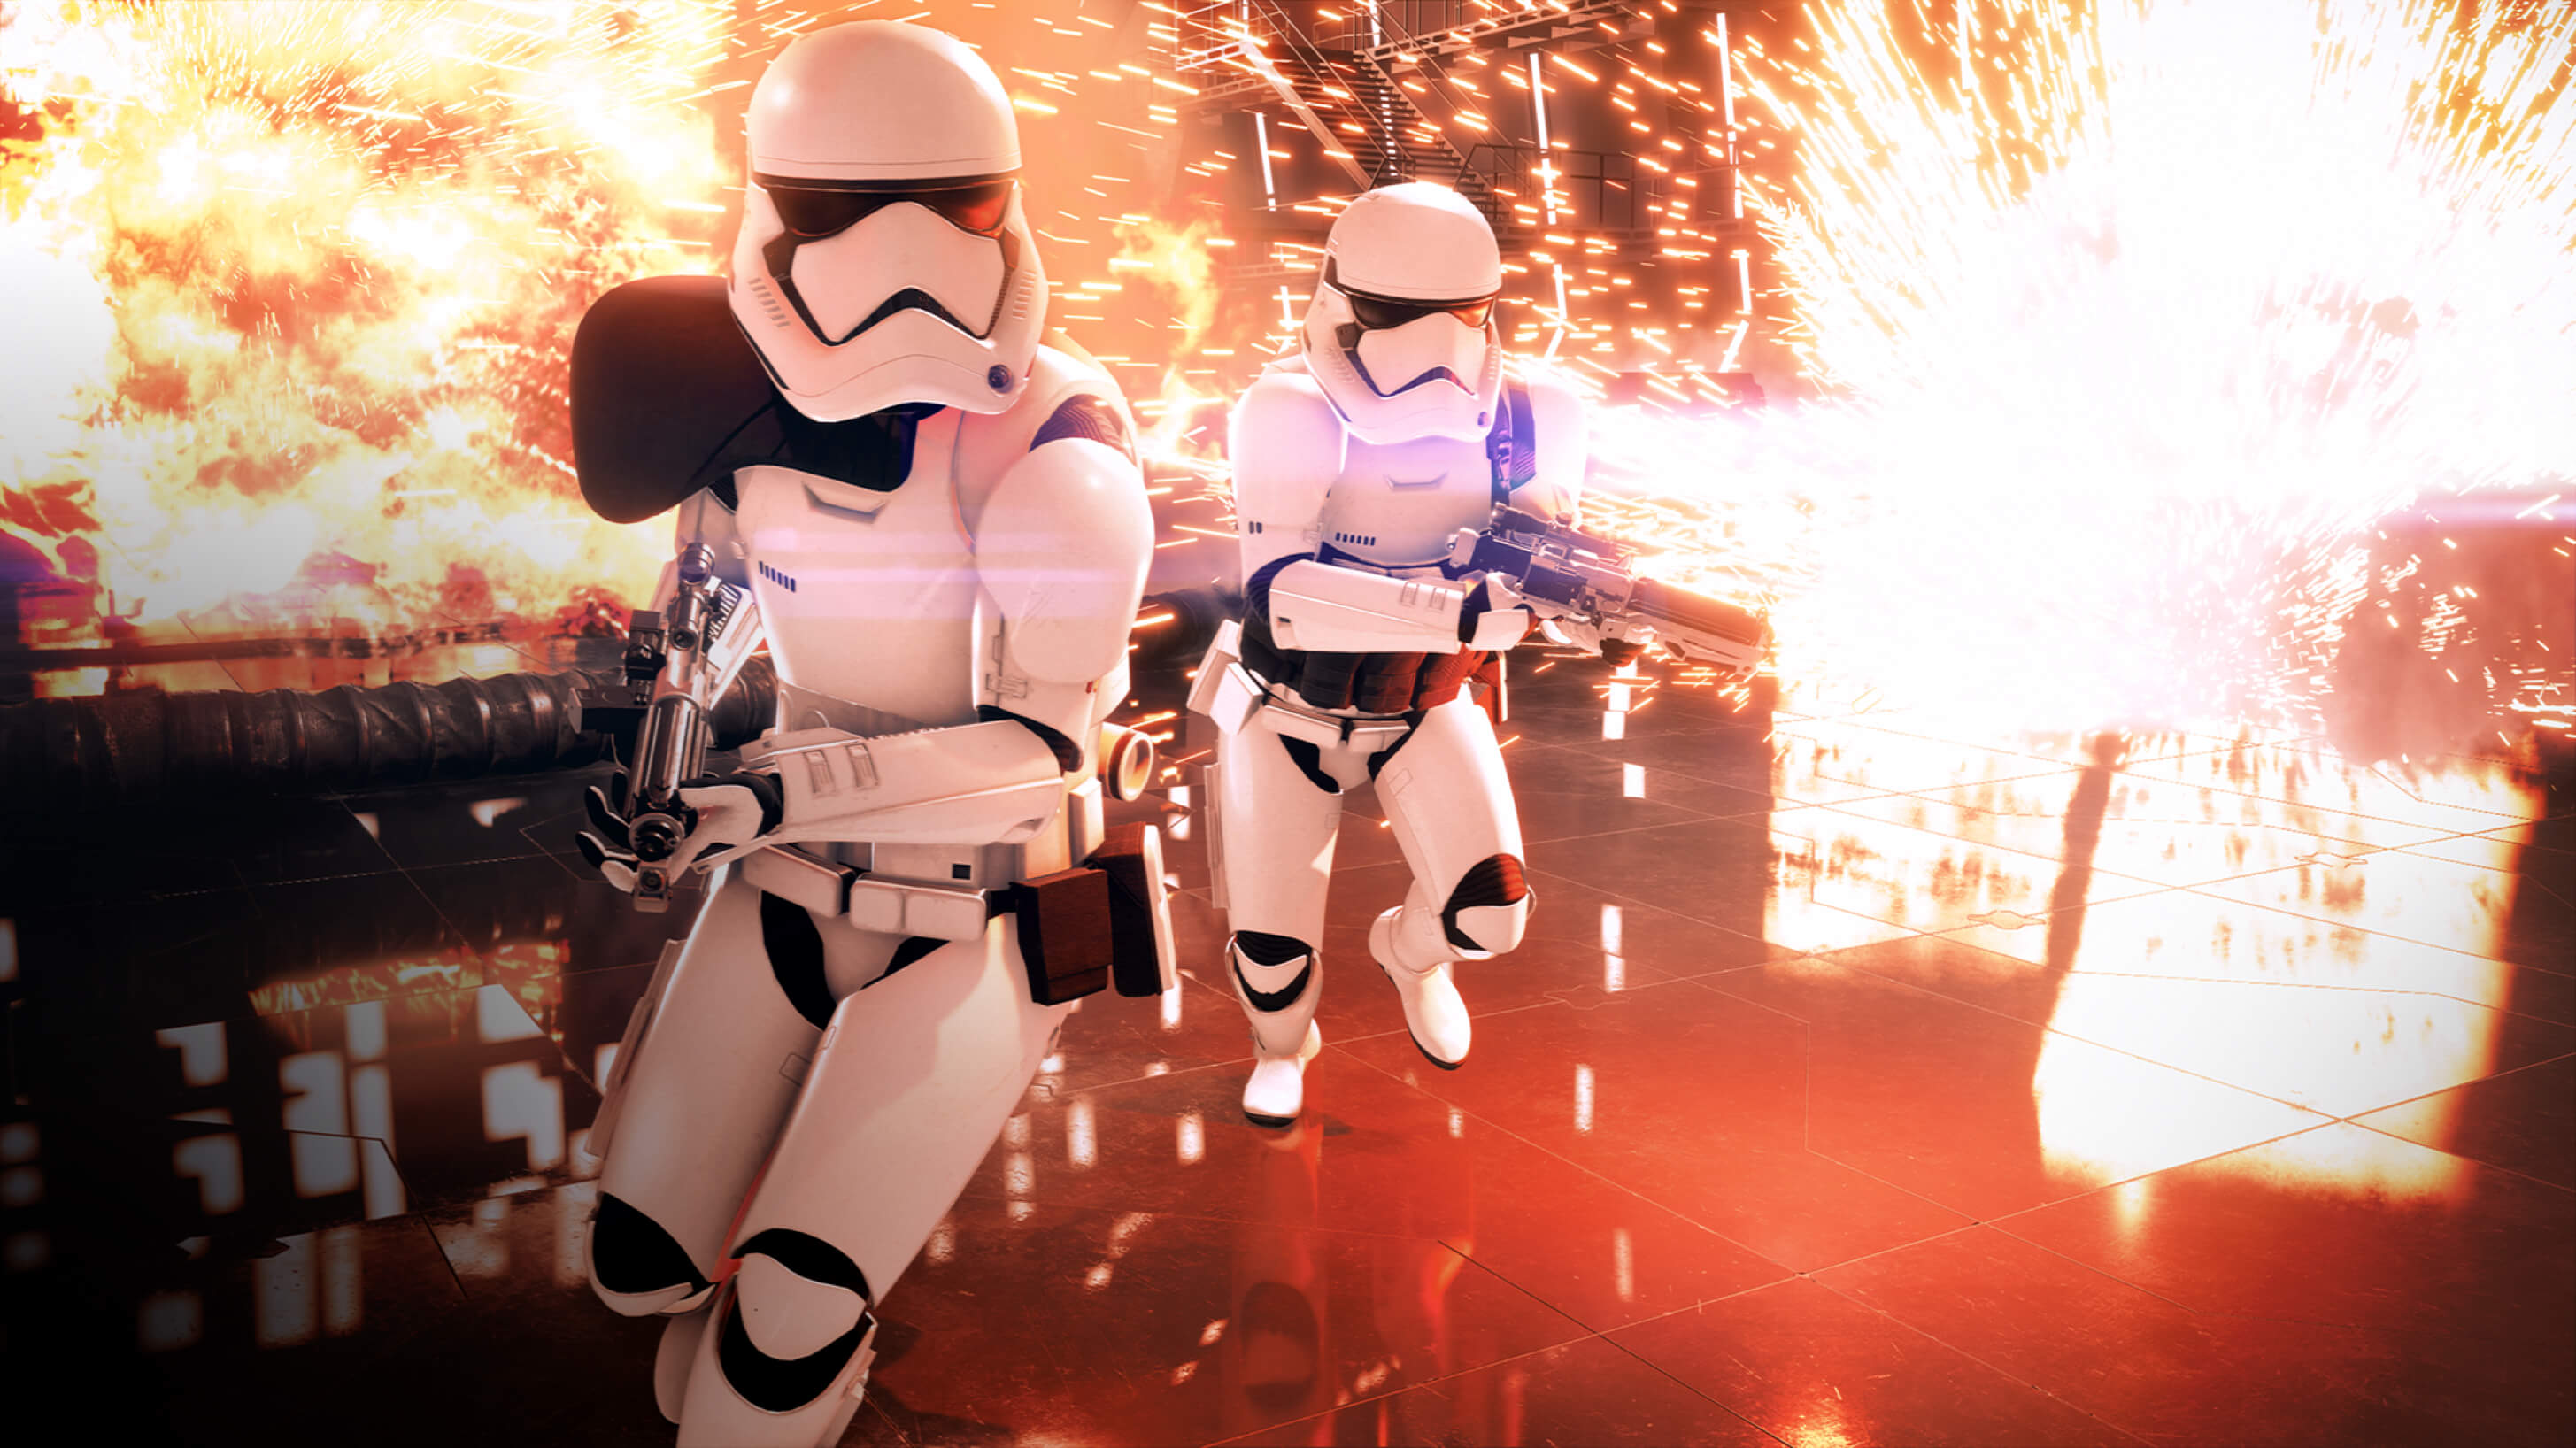 star wars battlefront 2 1.2 patch